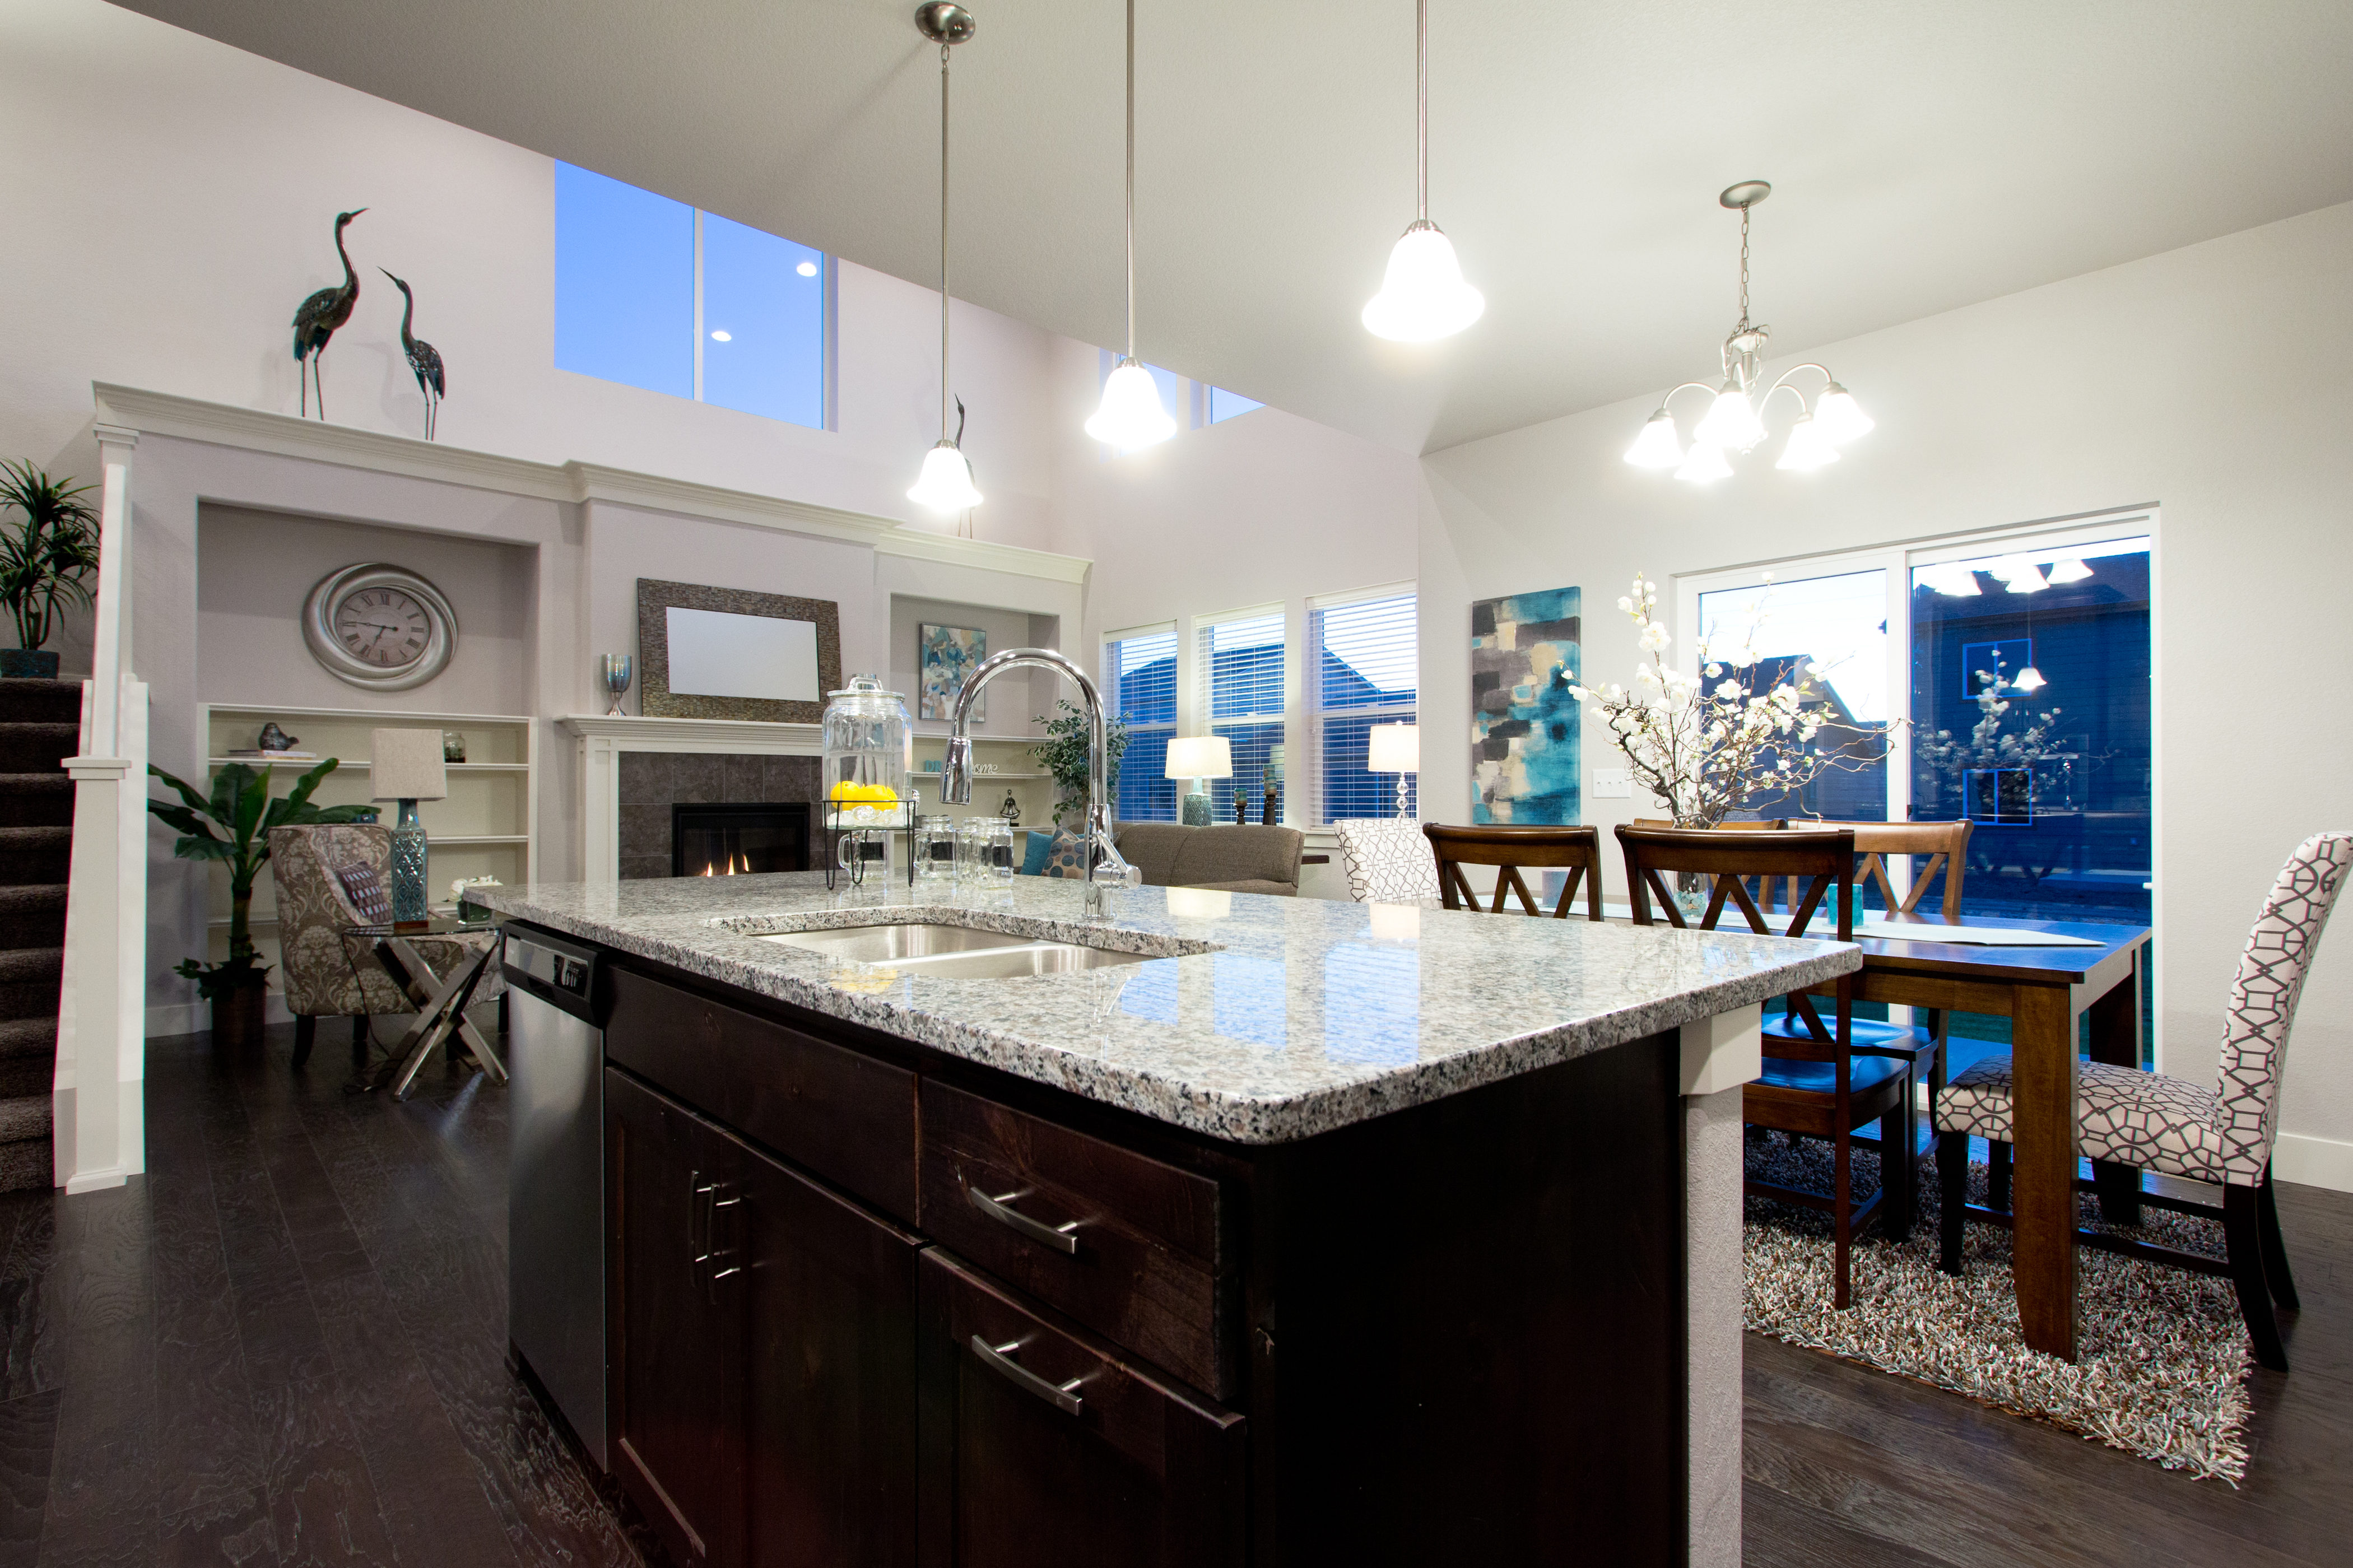 06-montrose-fort_collins-kitchen-new_home_community